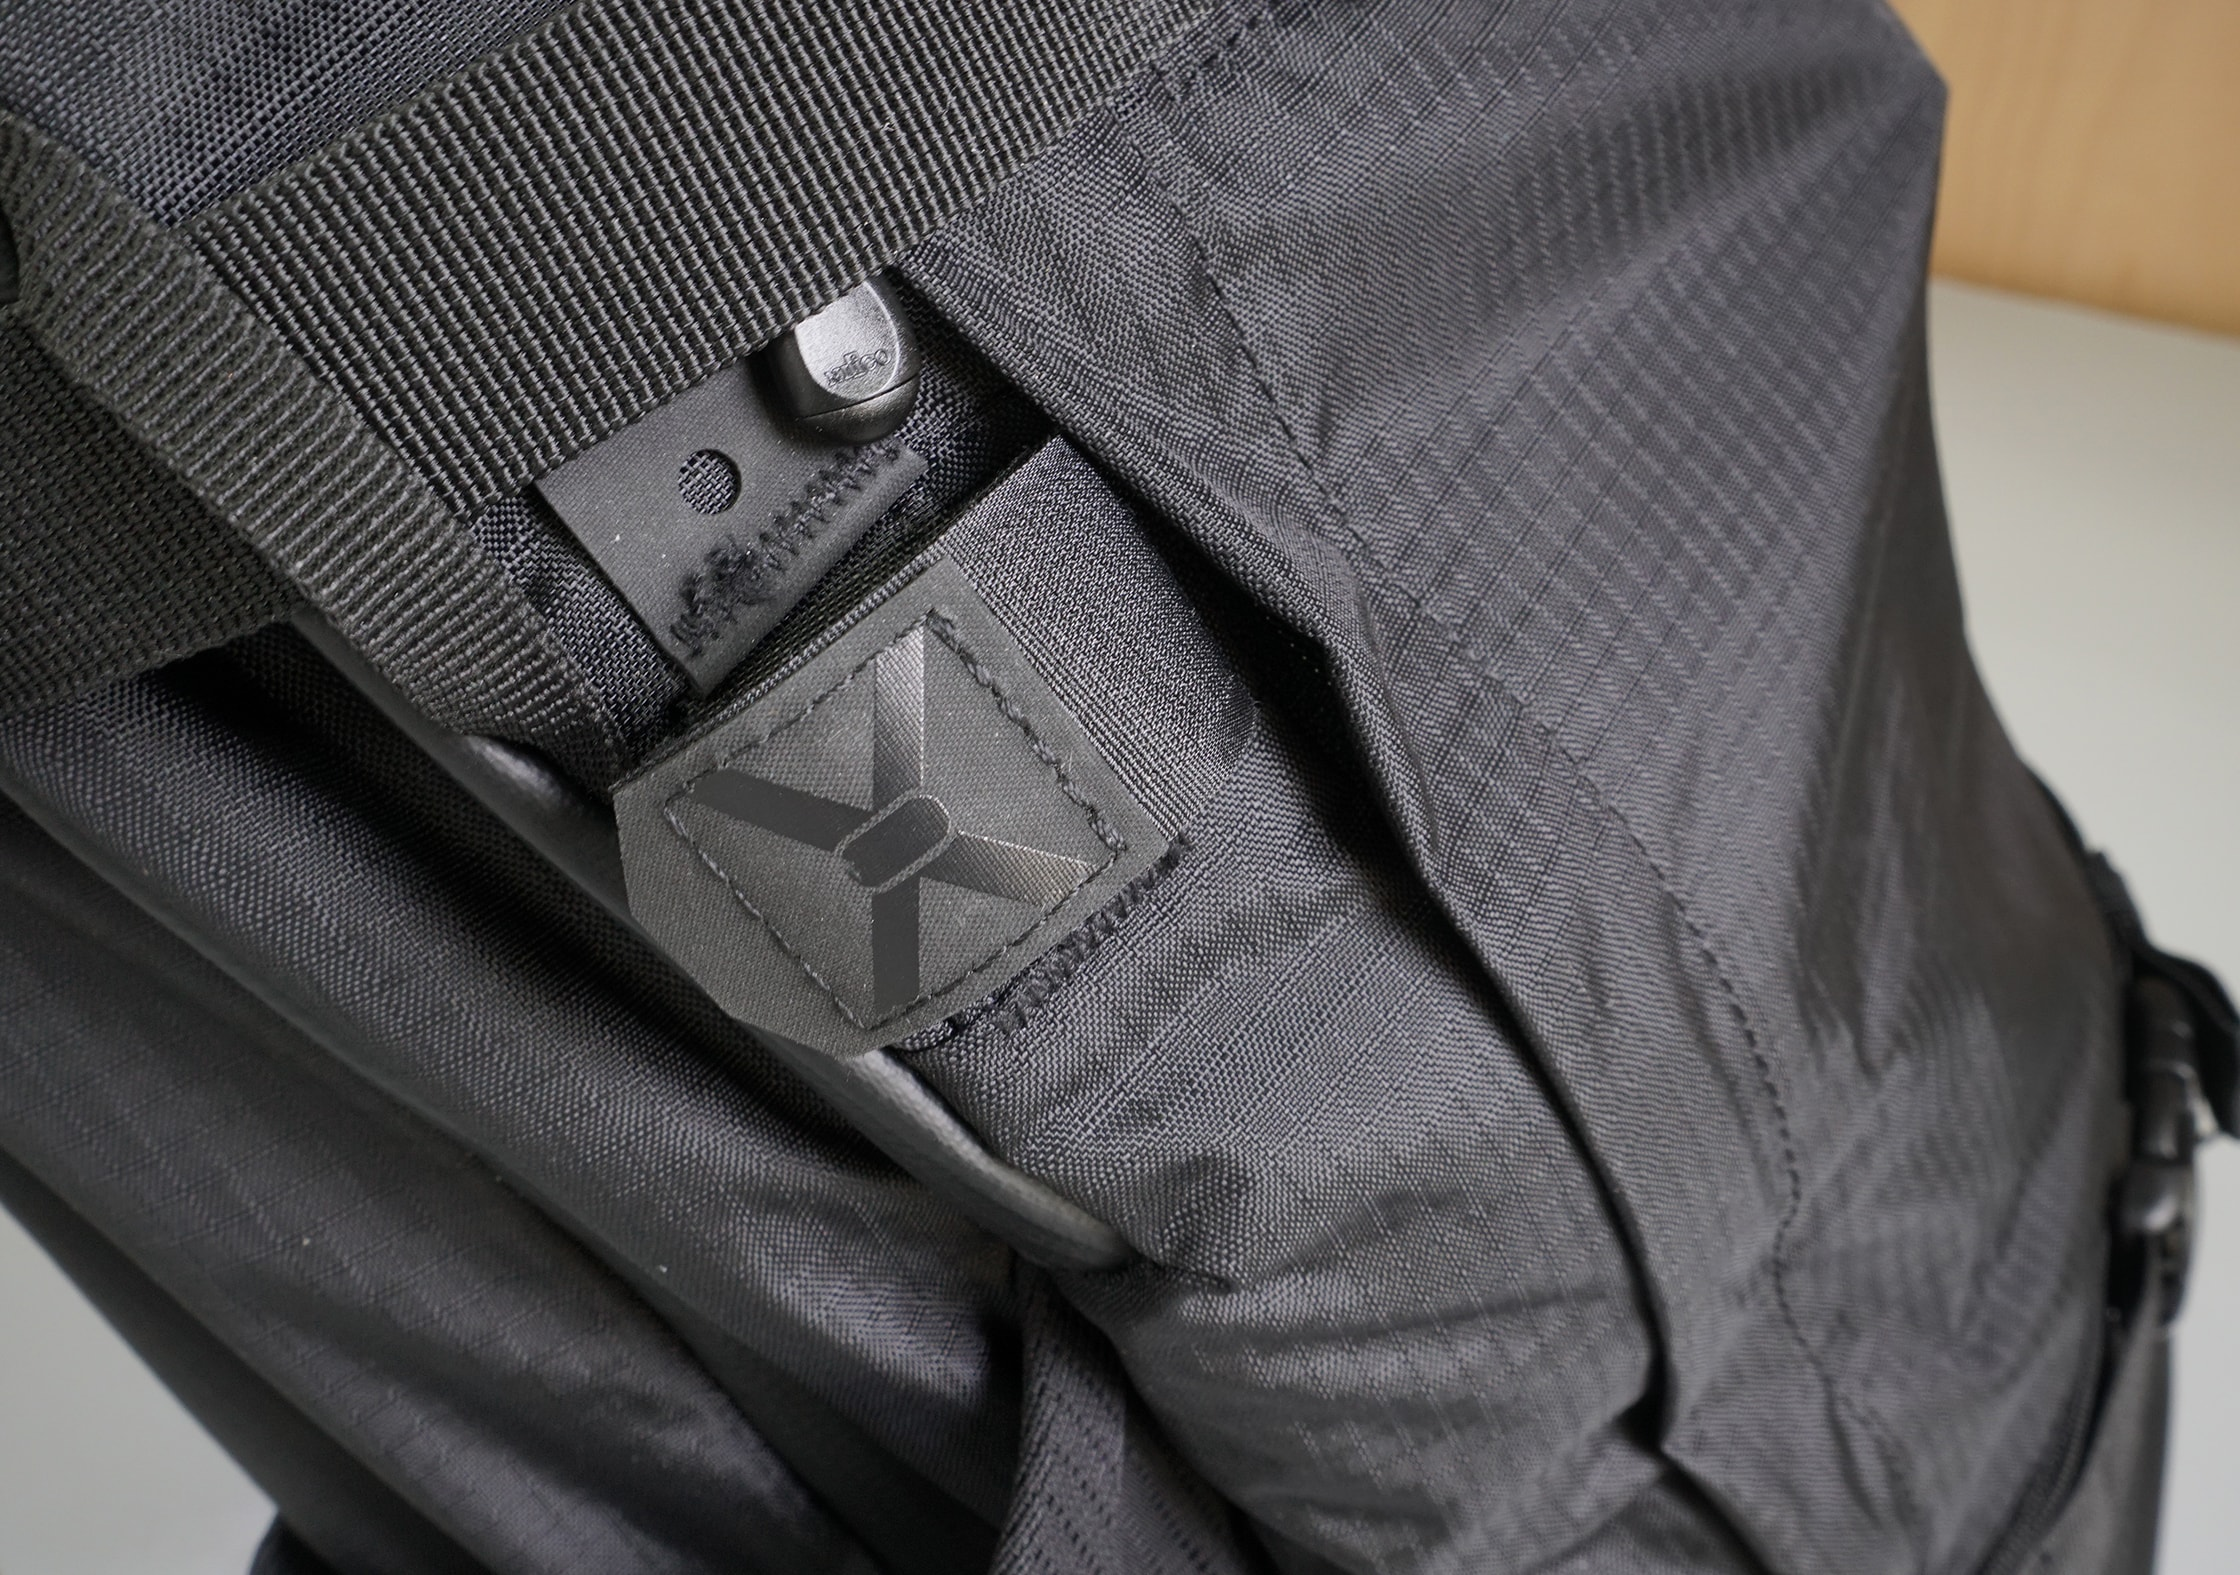 Pacsafe Venturesafe X40 Plus Velcro Attachment